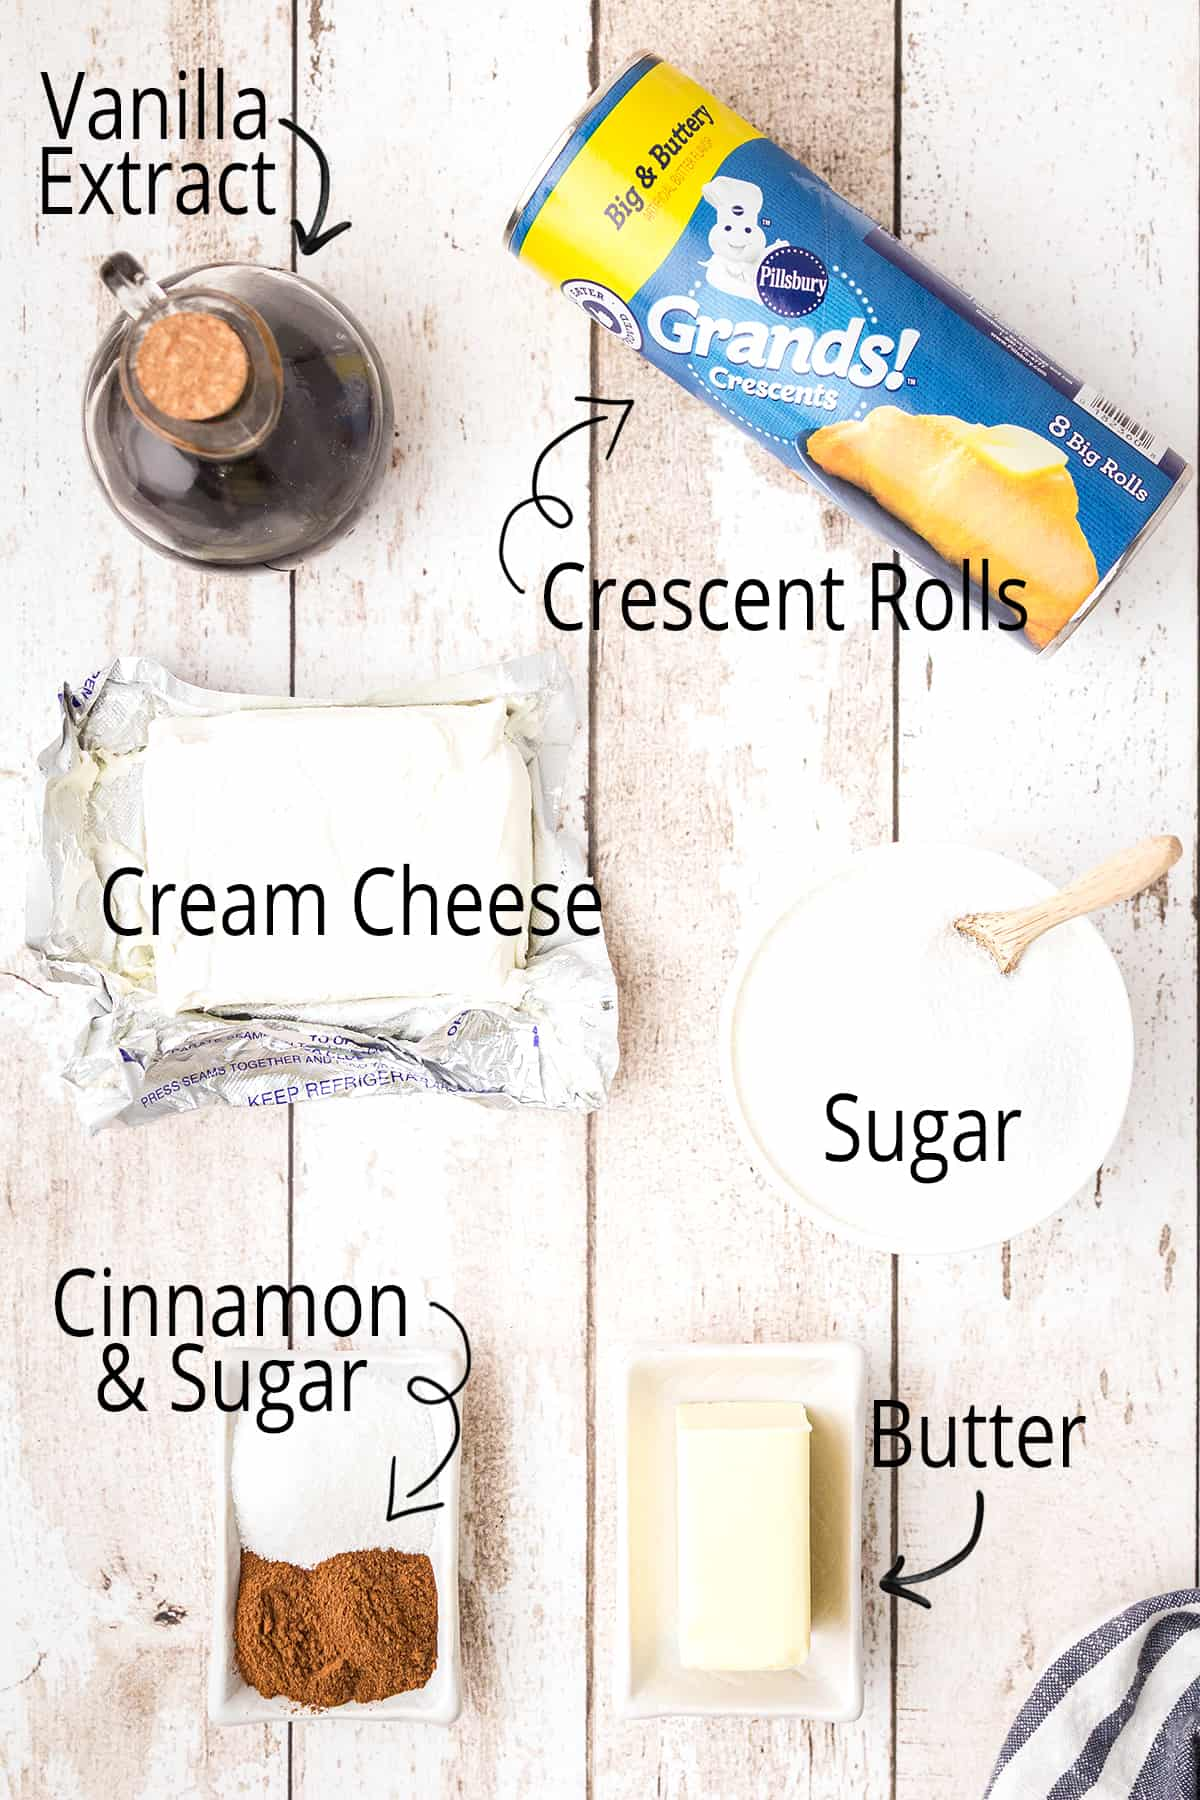 Ingredients needed for the recipe from left to right: vanilla extract, refrigerated crescent rolls, cream cheese, sugar, cinnamon-sugar mixture, and butter